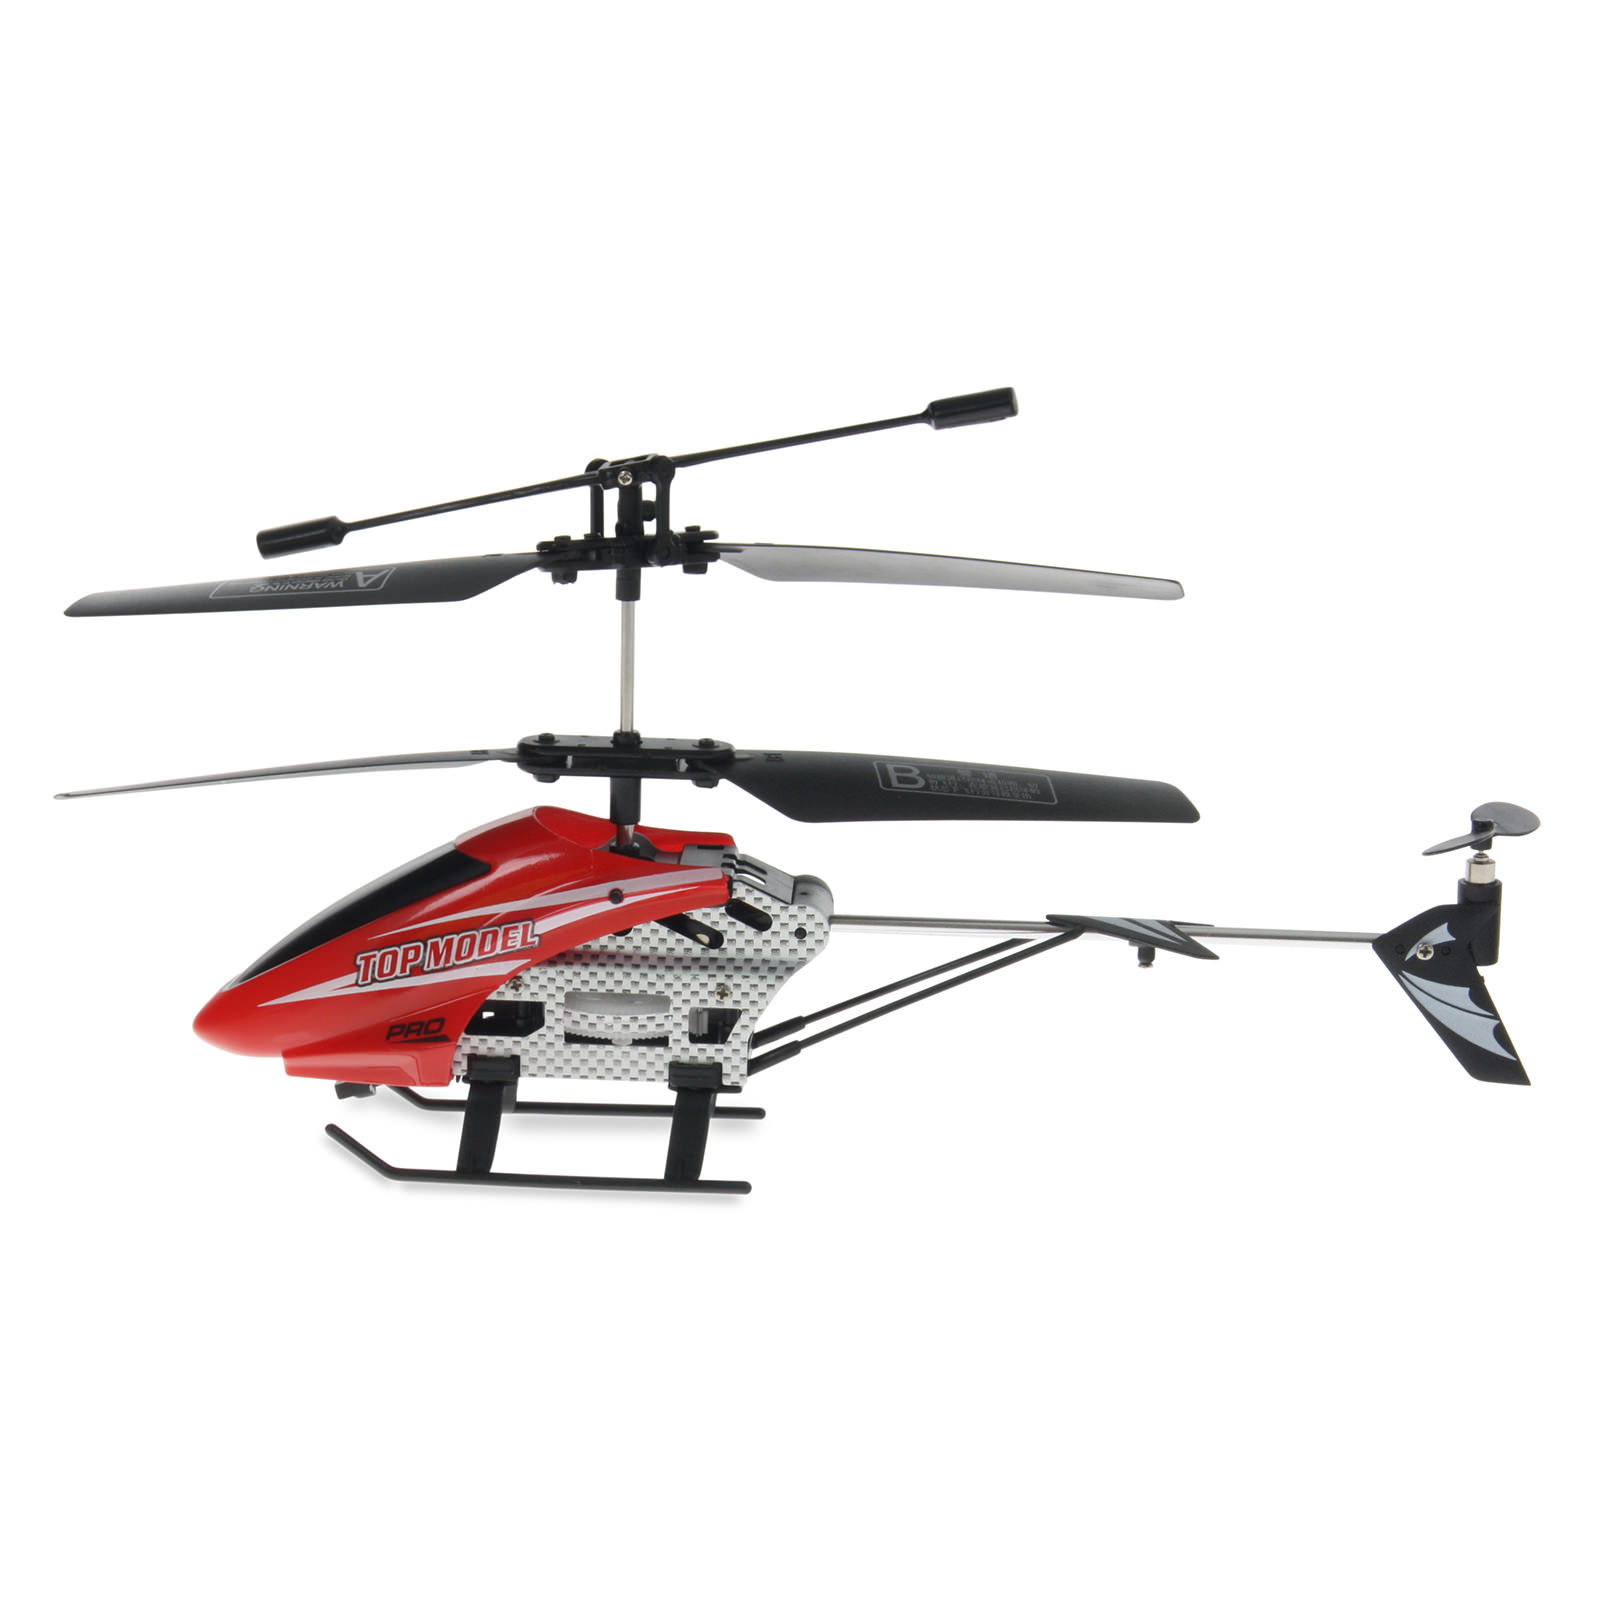 Top Model Red Rc Helicopter At Hobby Warehouse